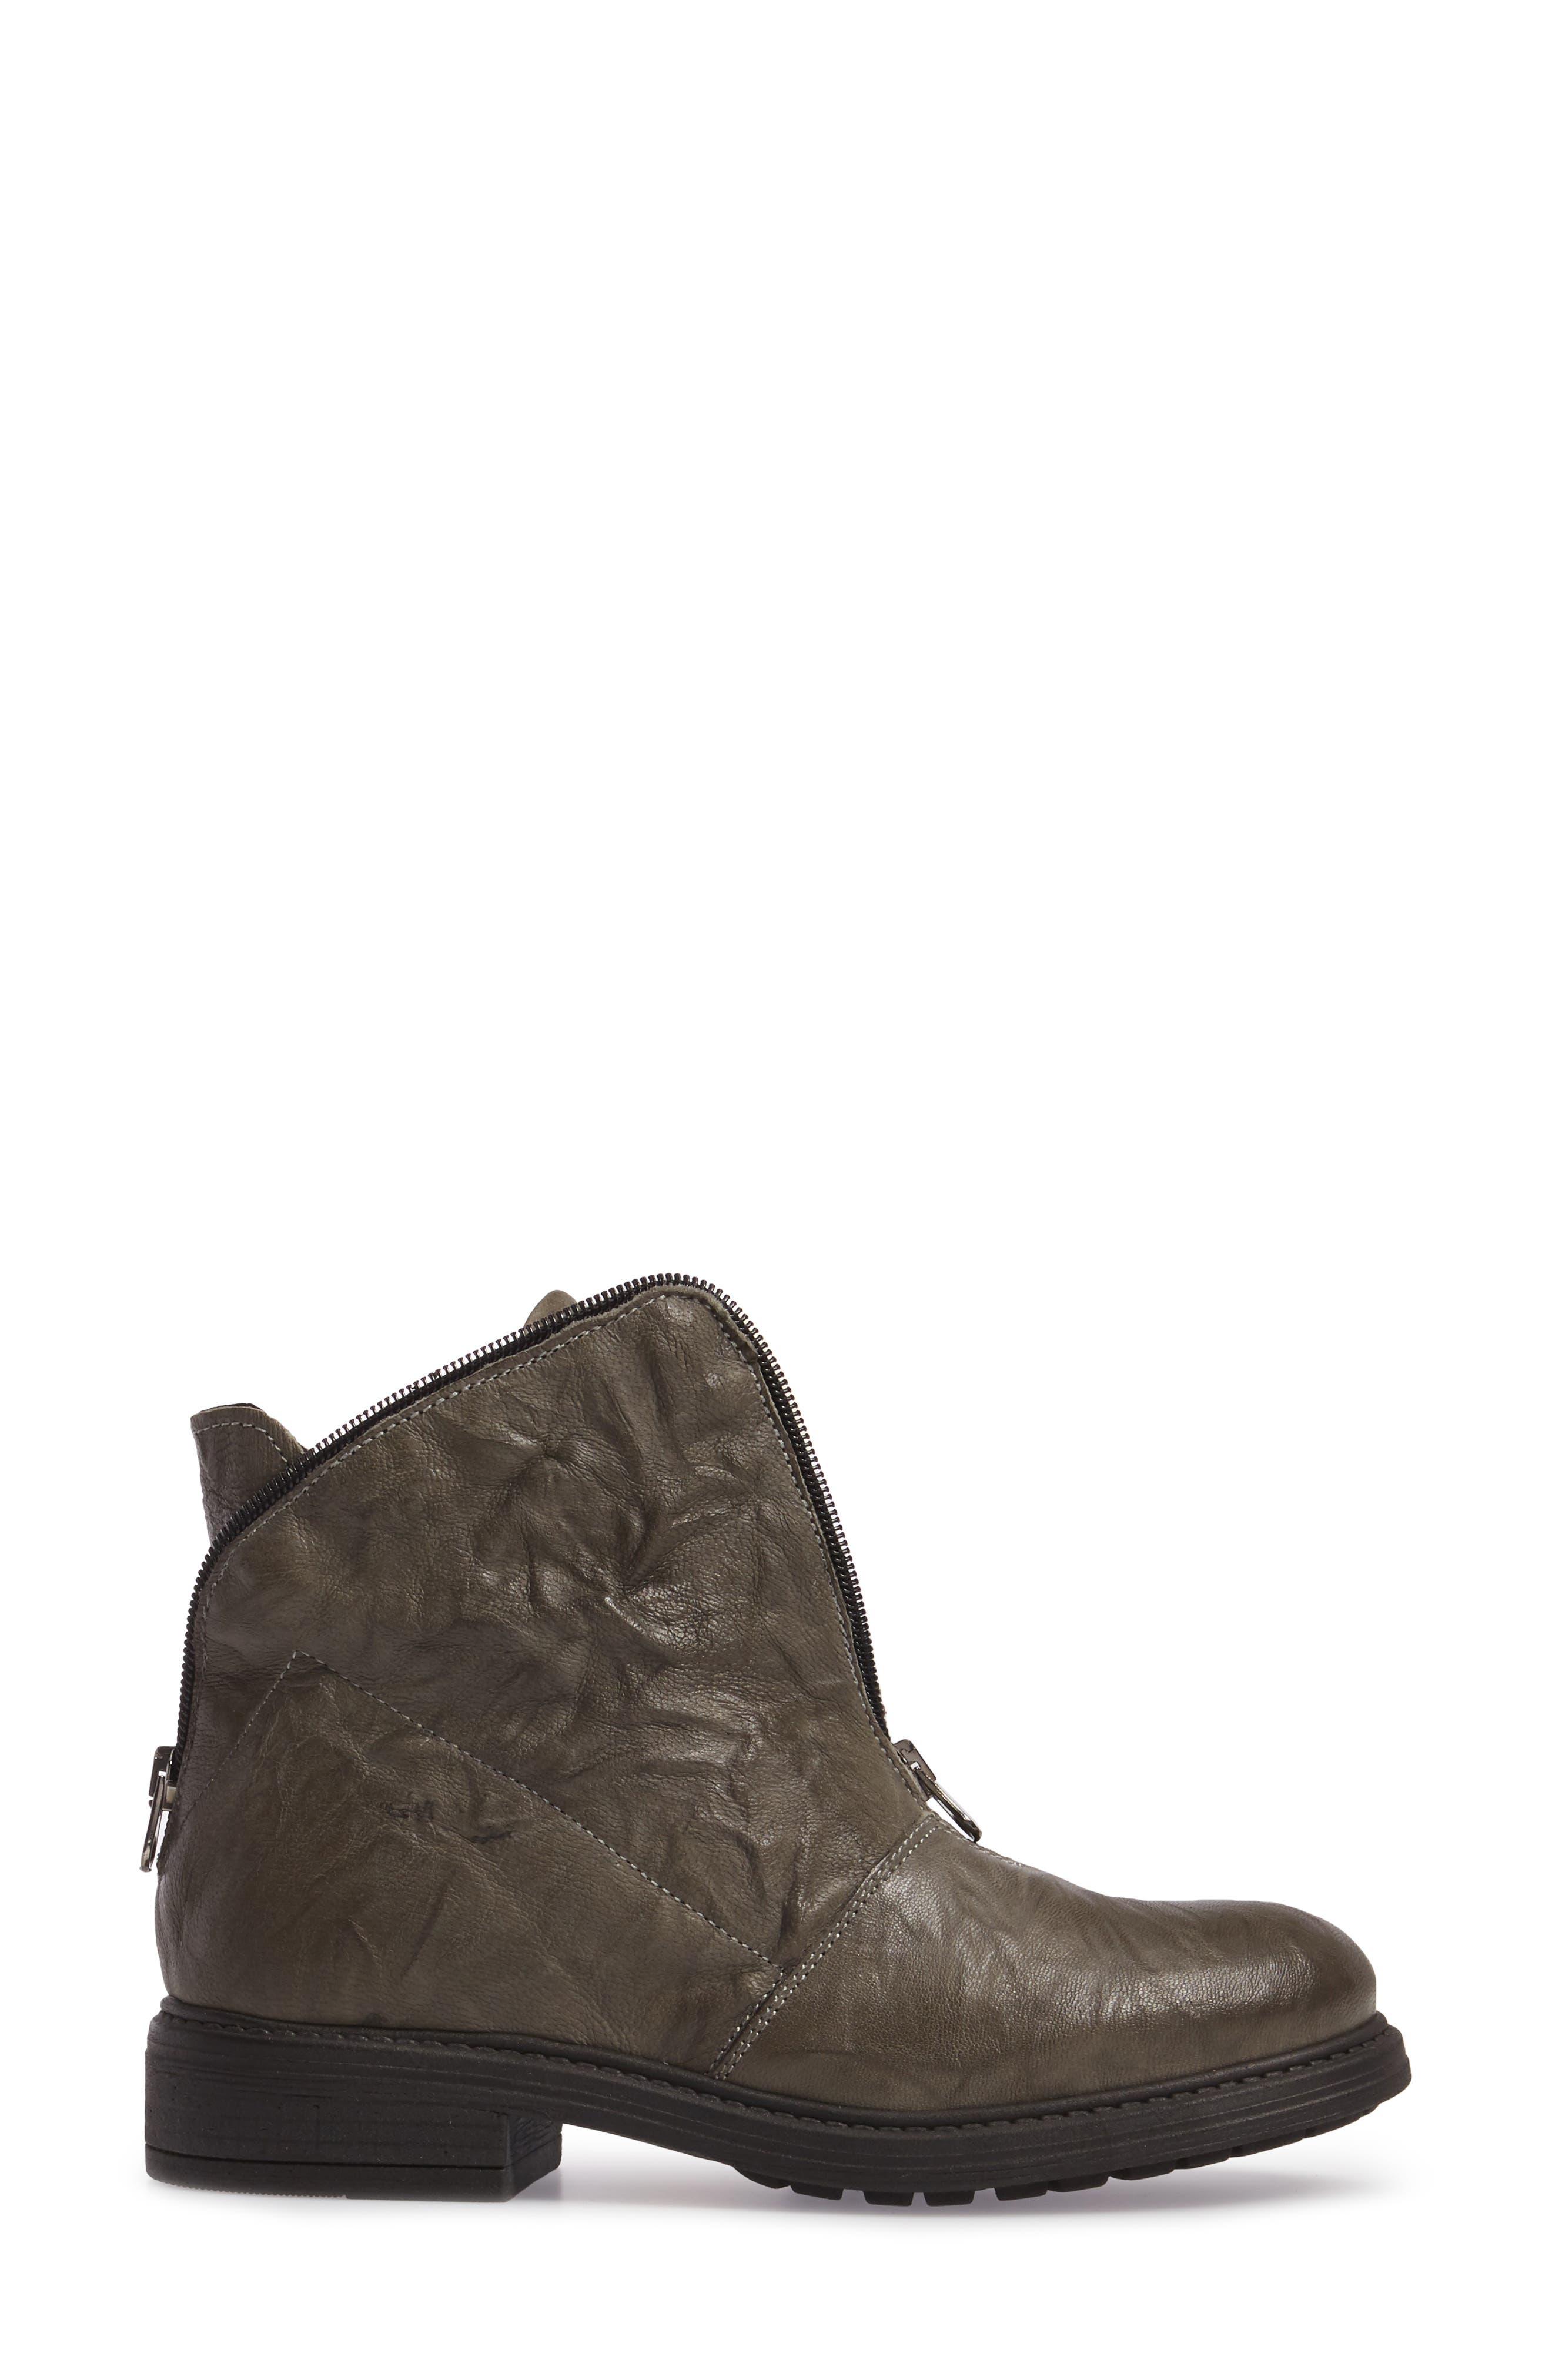 Sheridan Bling Bootie,                             Alternate thumbnail 3, color,                             Charcoal Leather